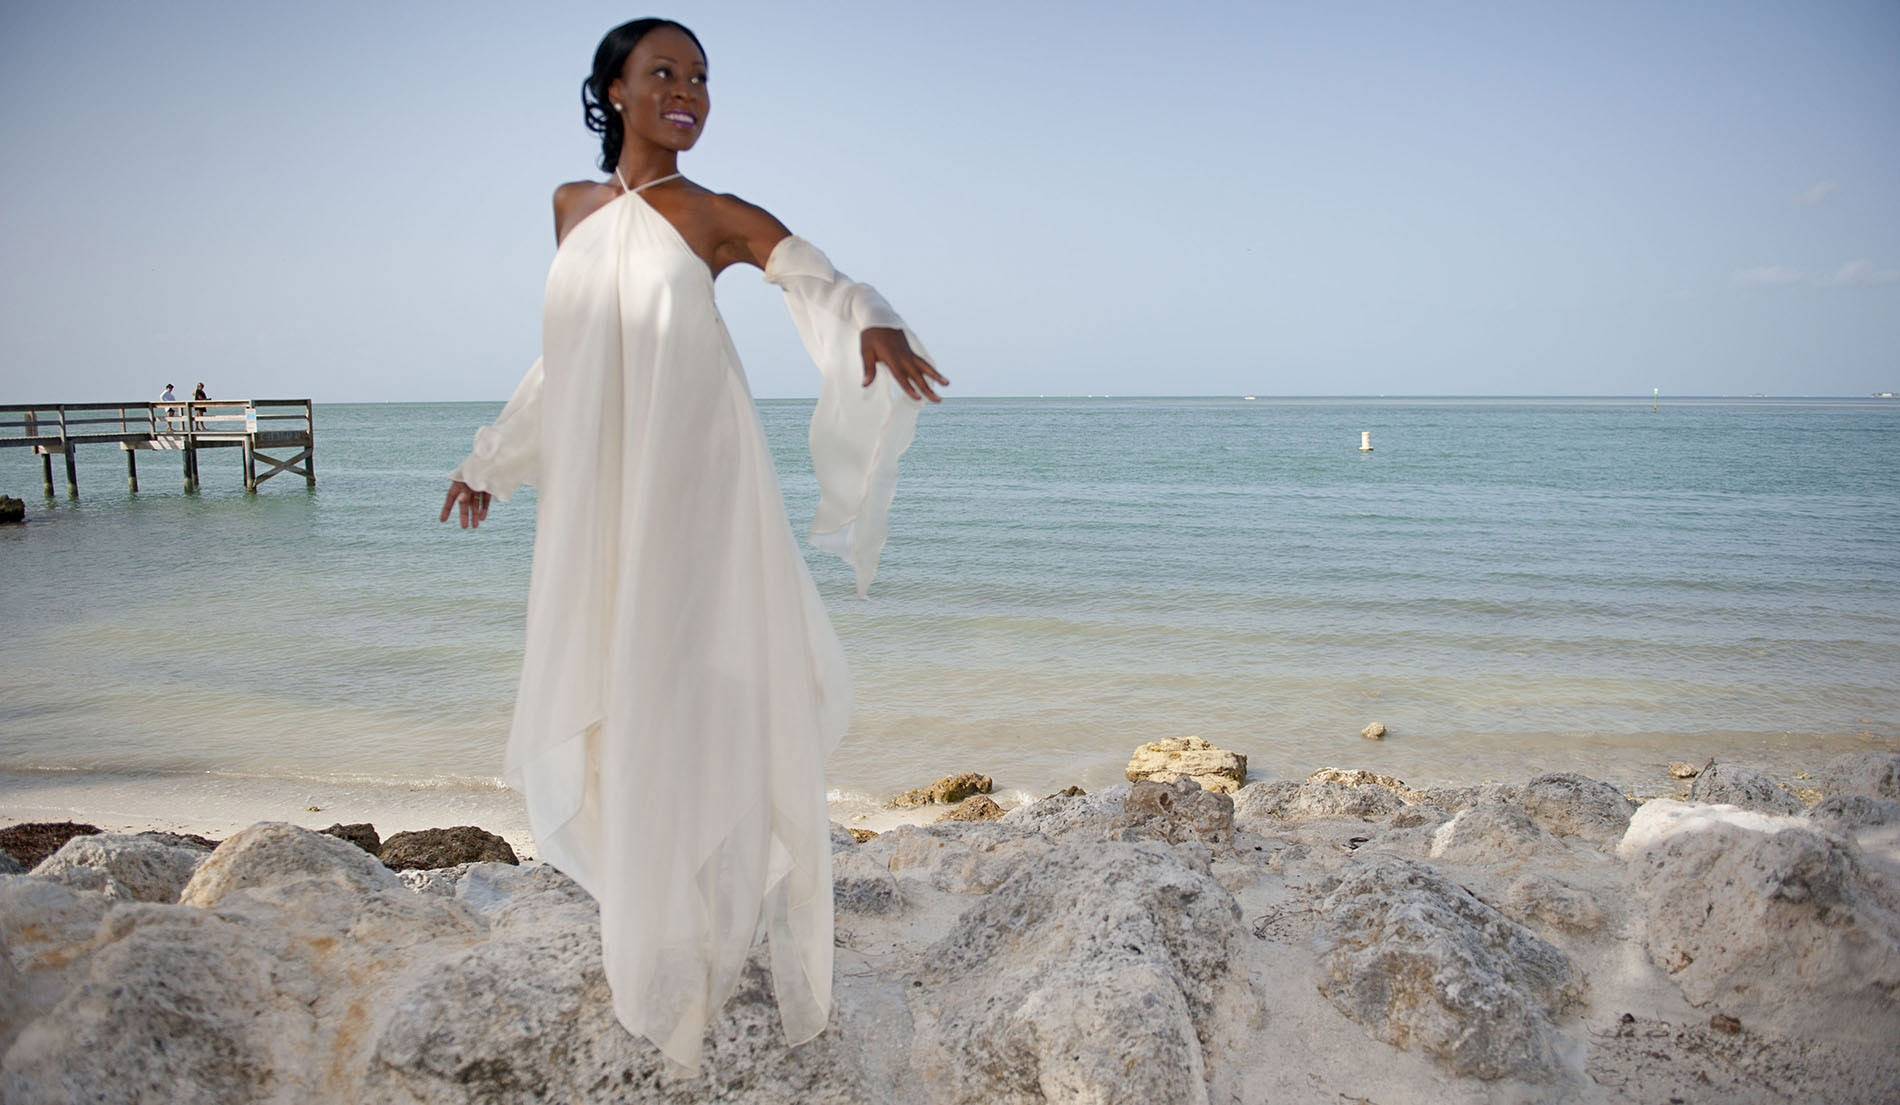 Angelic Second Marriage Wedding Dresses Beach - Look 1 Front